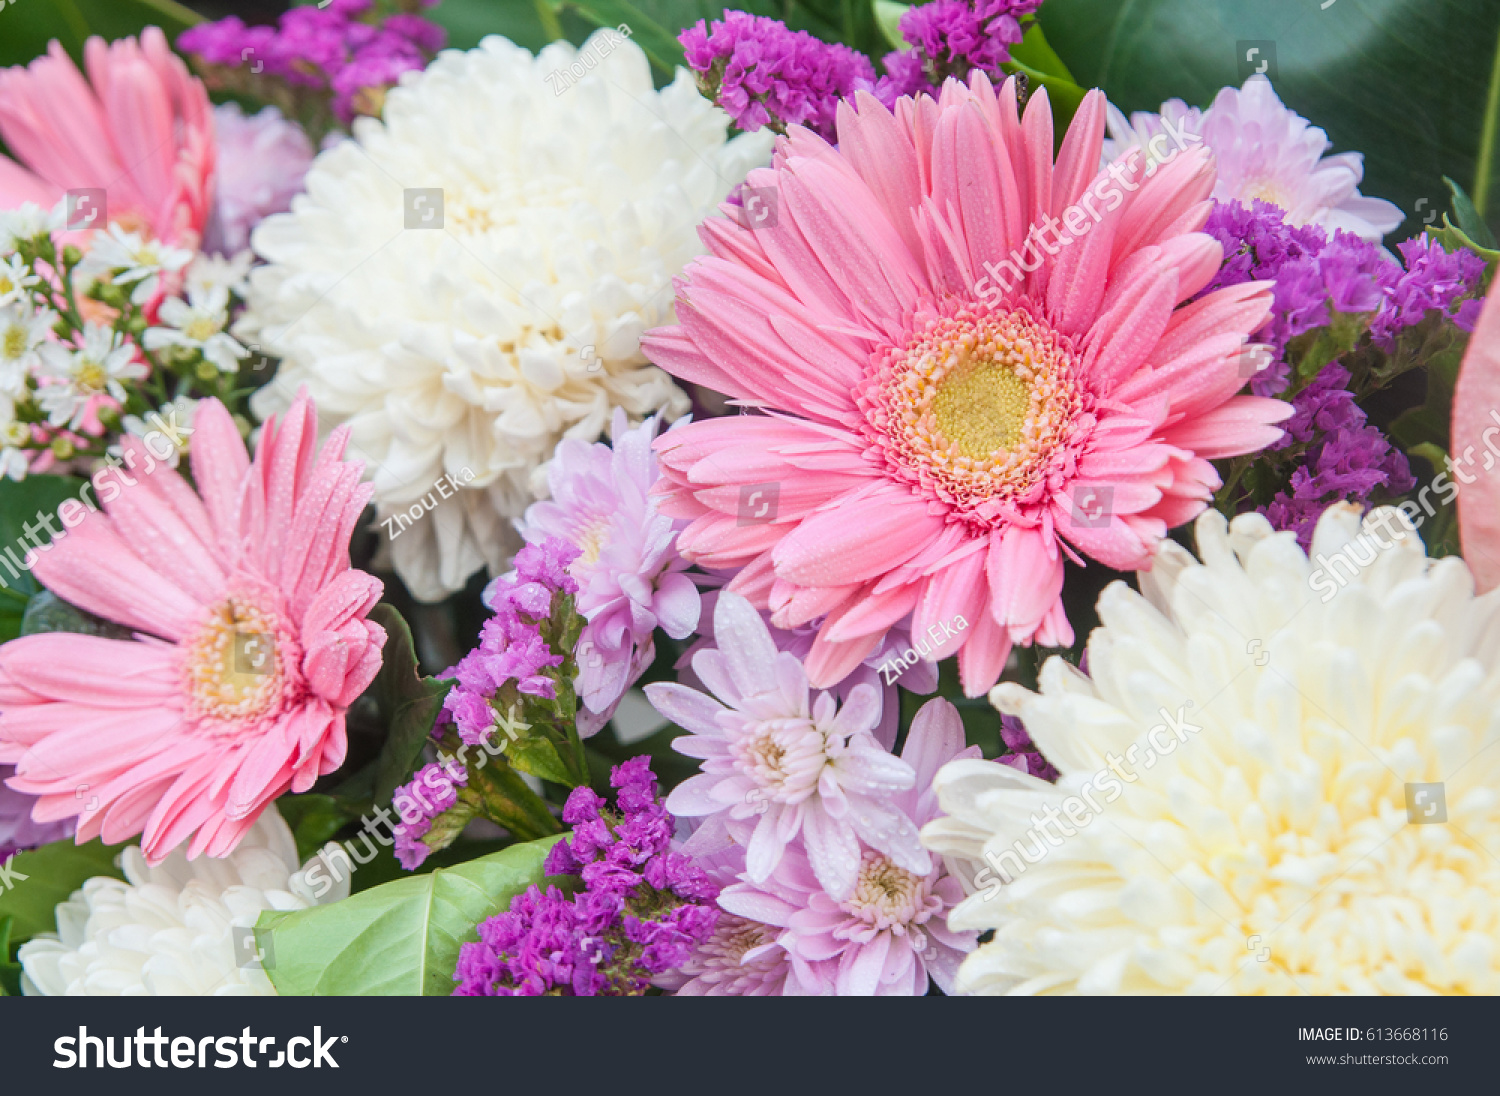 Multi Color Gerbera Lily Flowers Stock Photo Edit Now 613668116